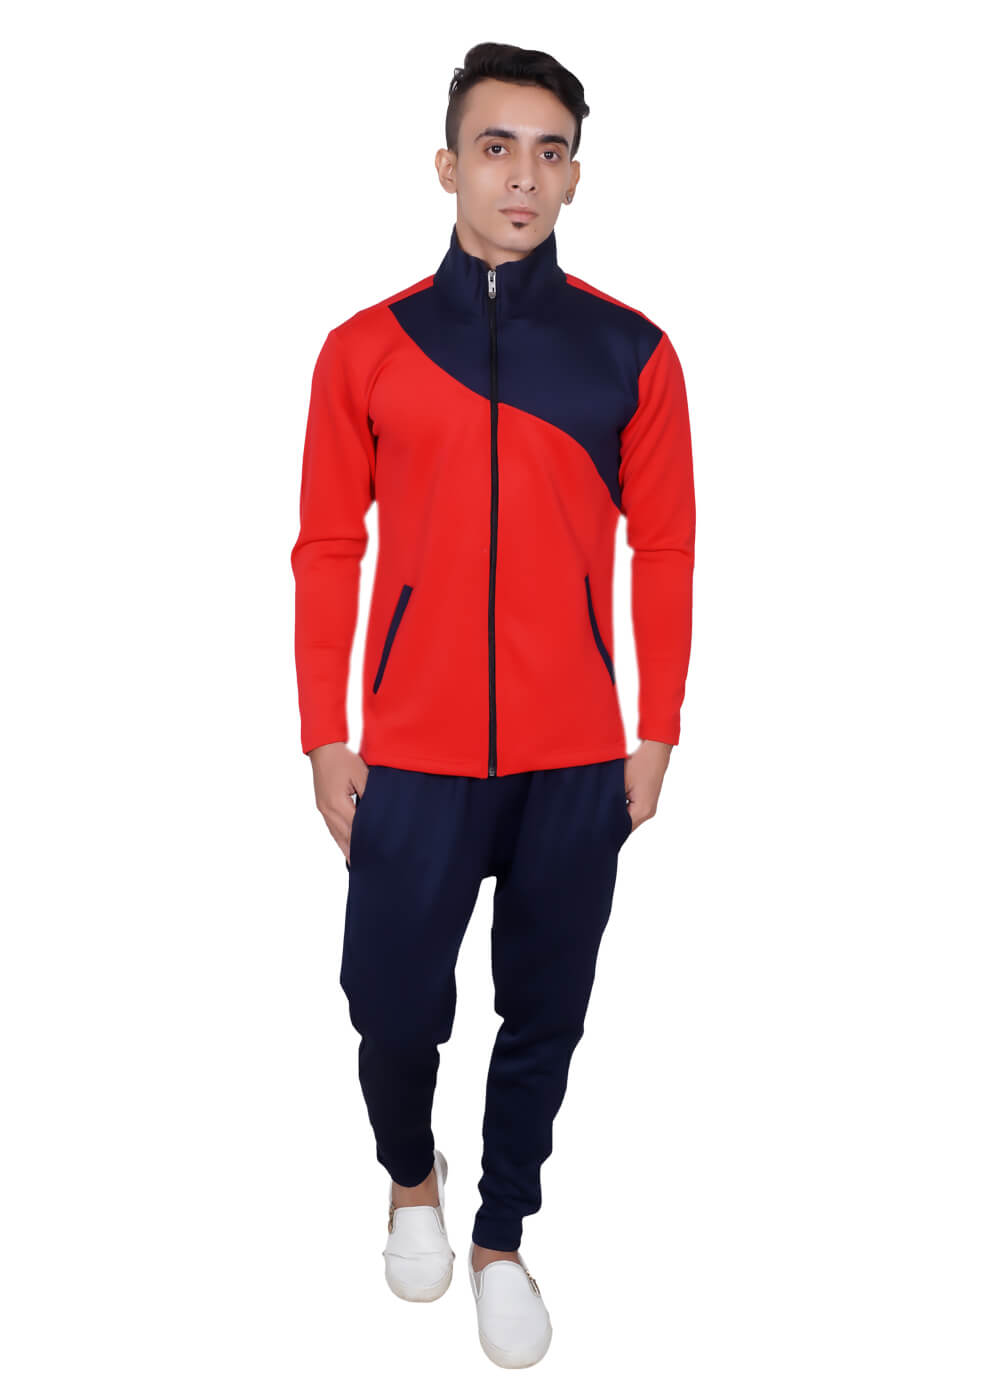 Cheap Tracksuits Manufacturers in Jalandhar in Australia